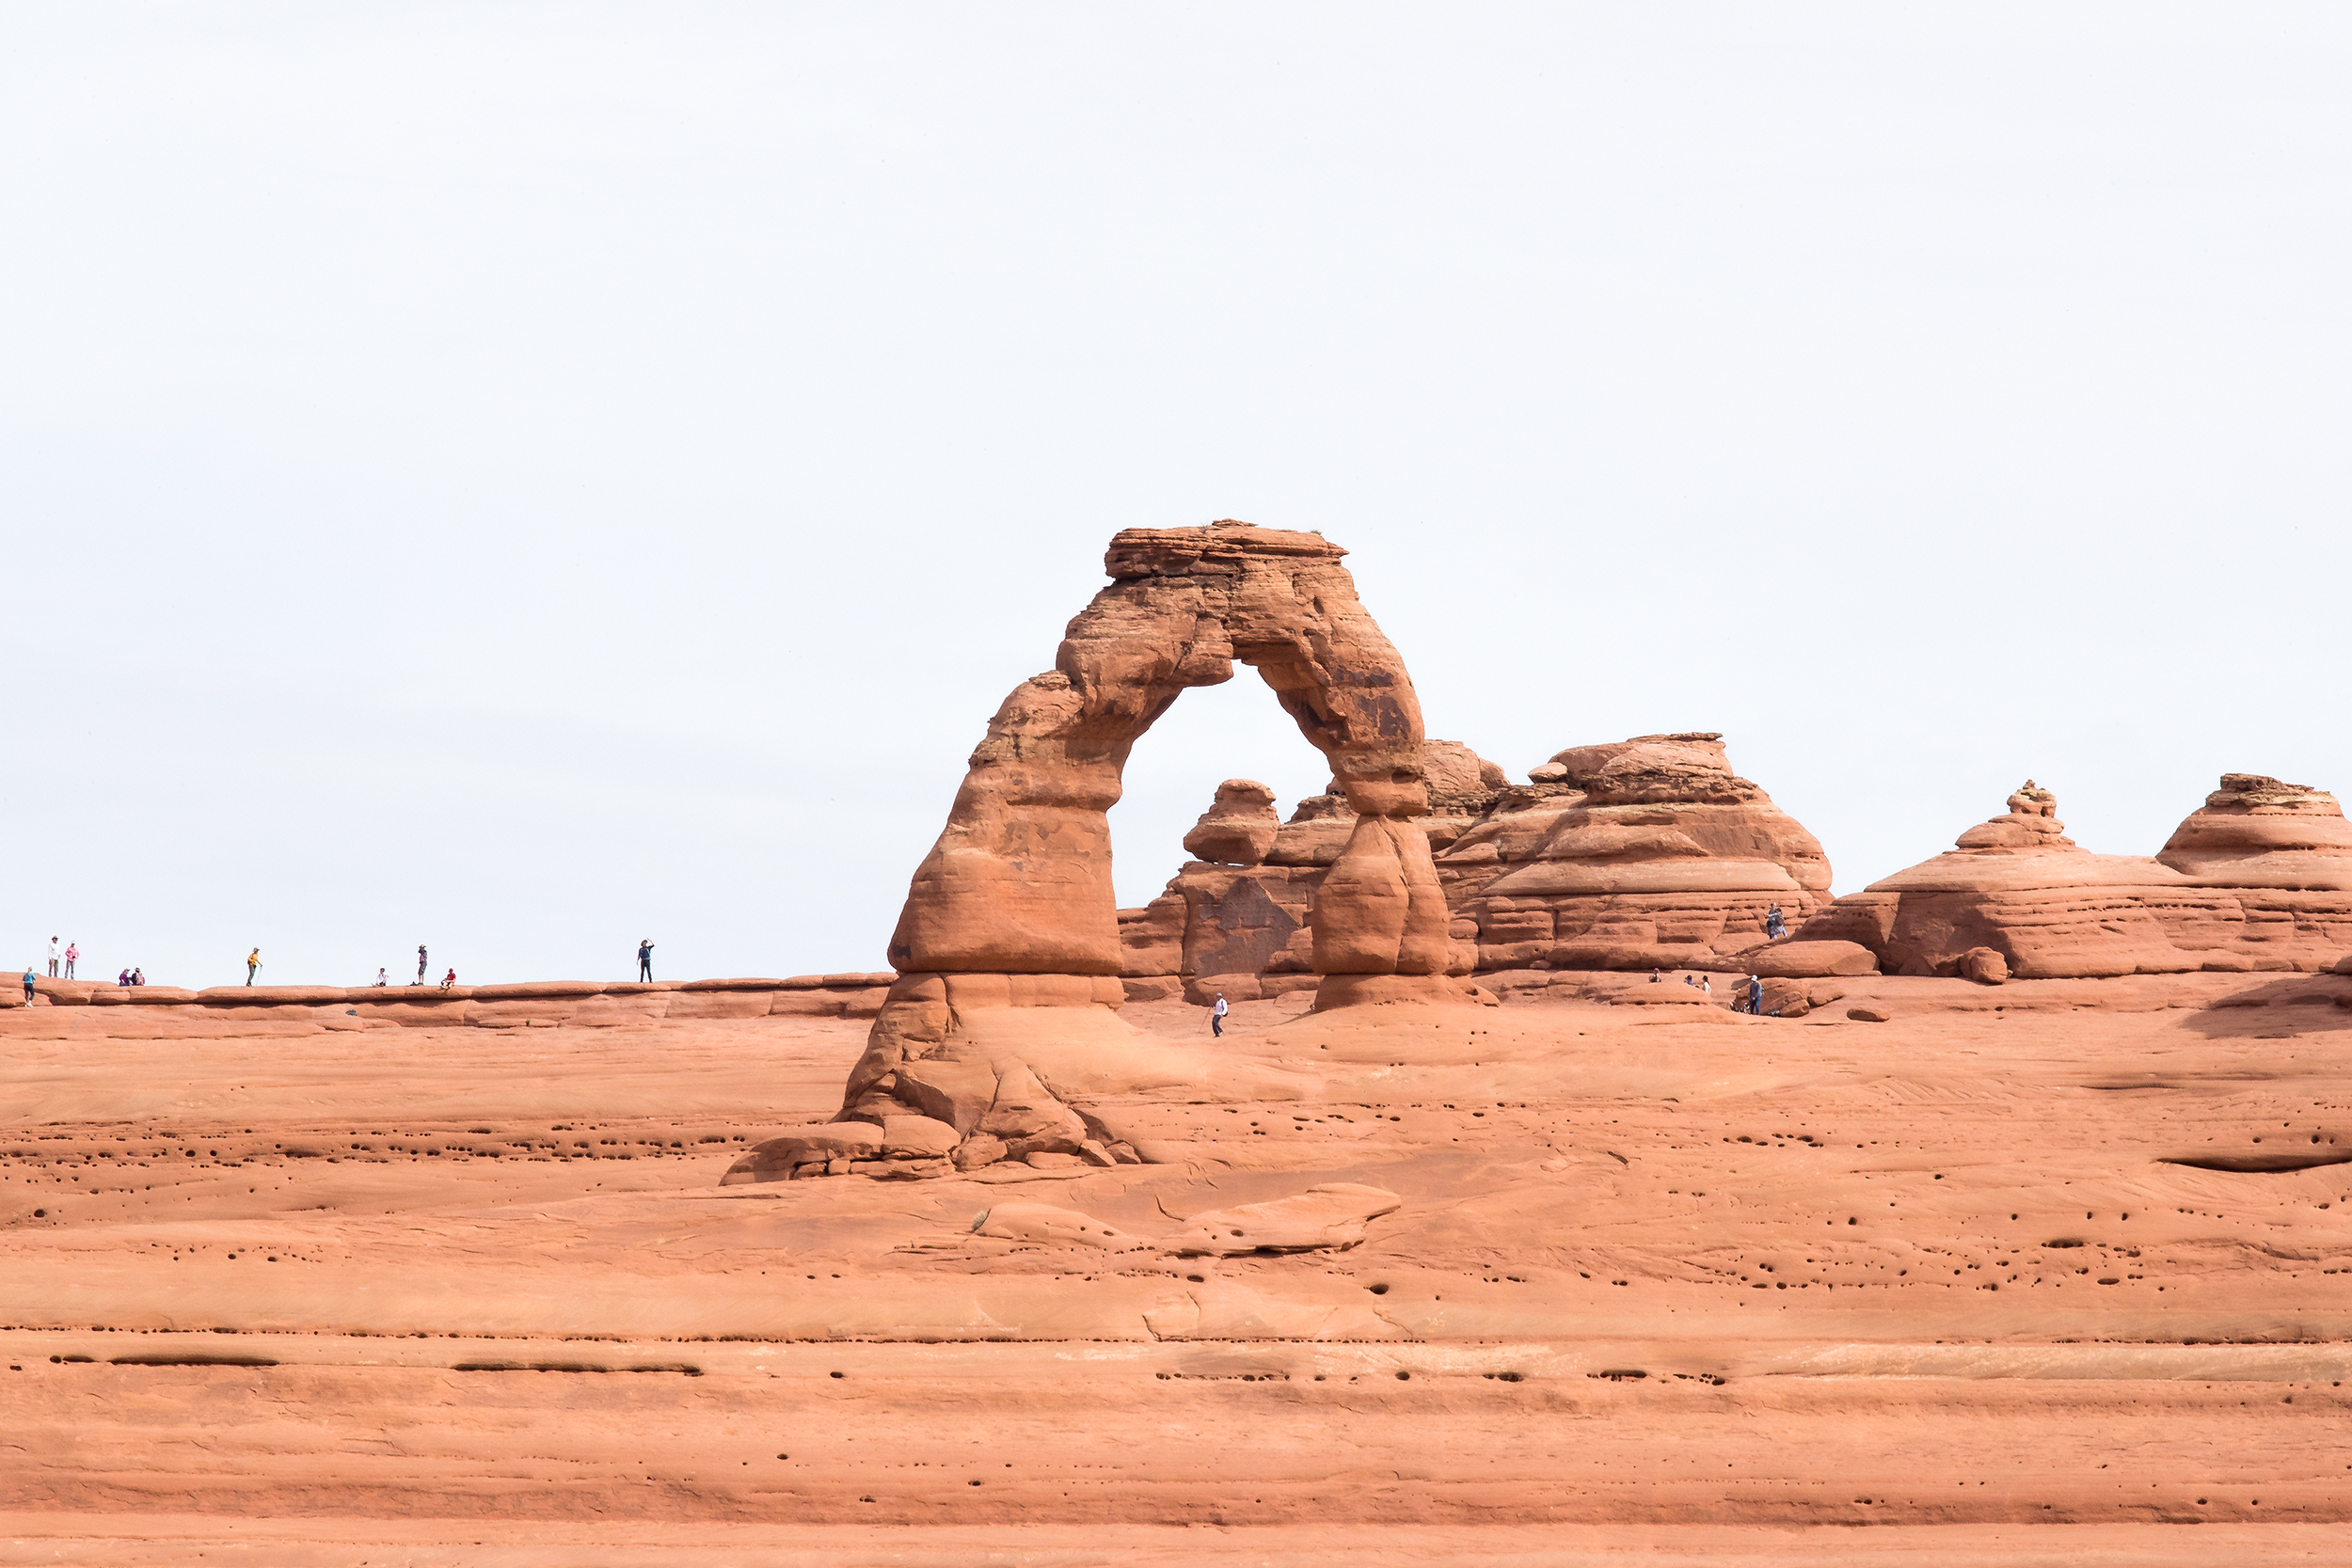 NATLPARKING_travel_rv_adventure_archesnationalpark_2748_WB